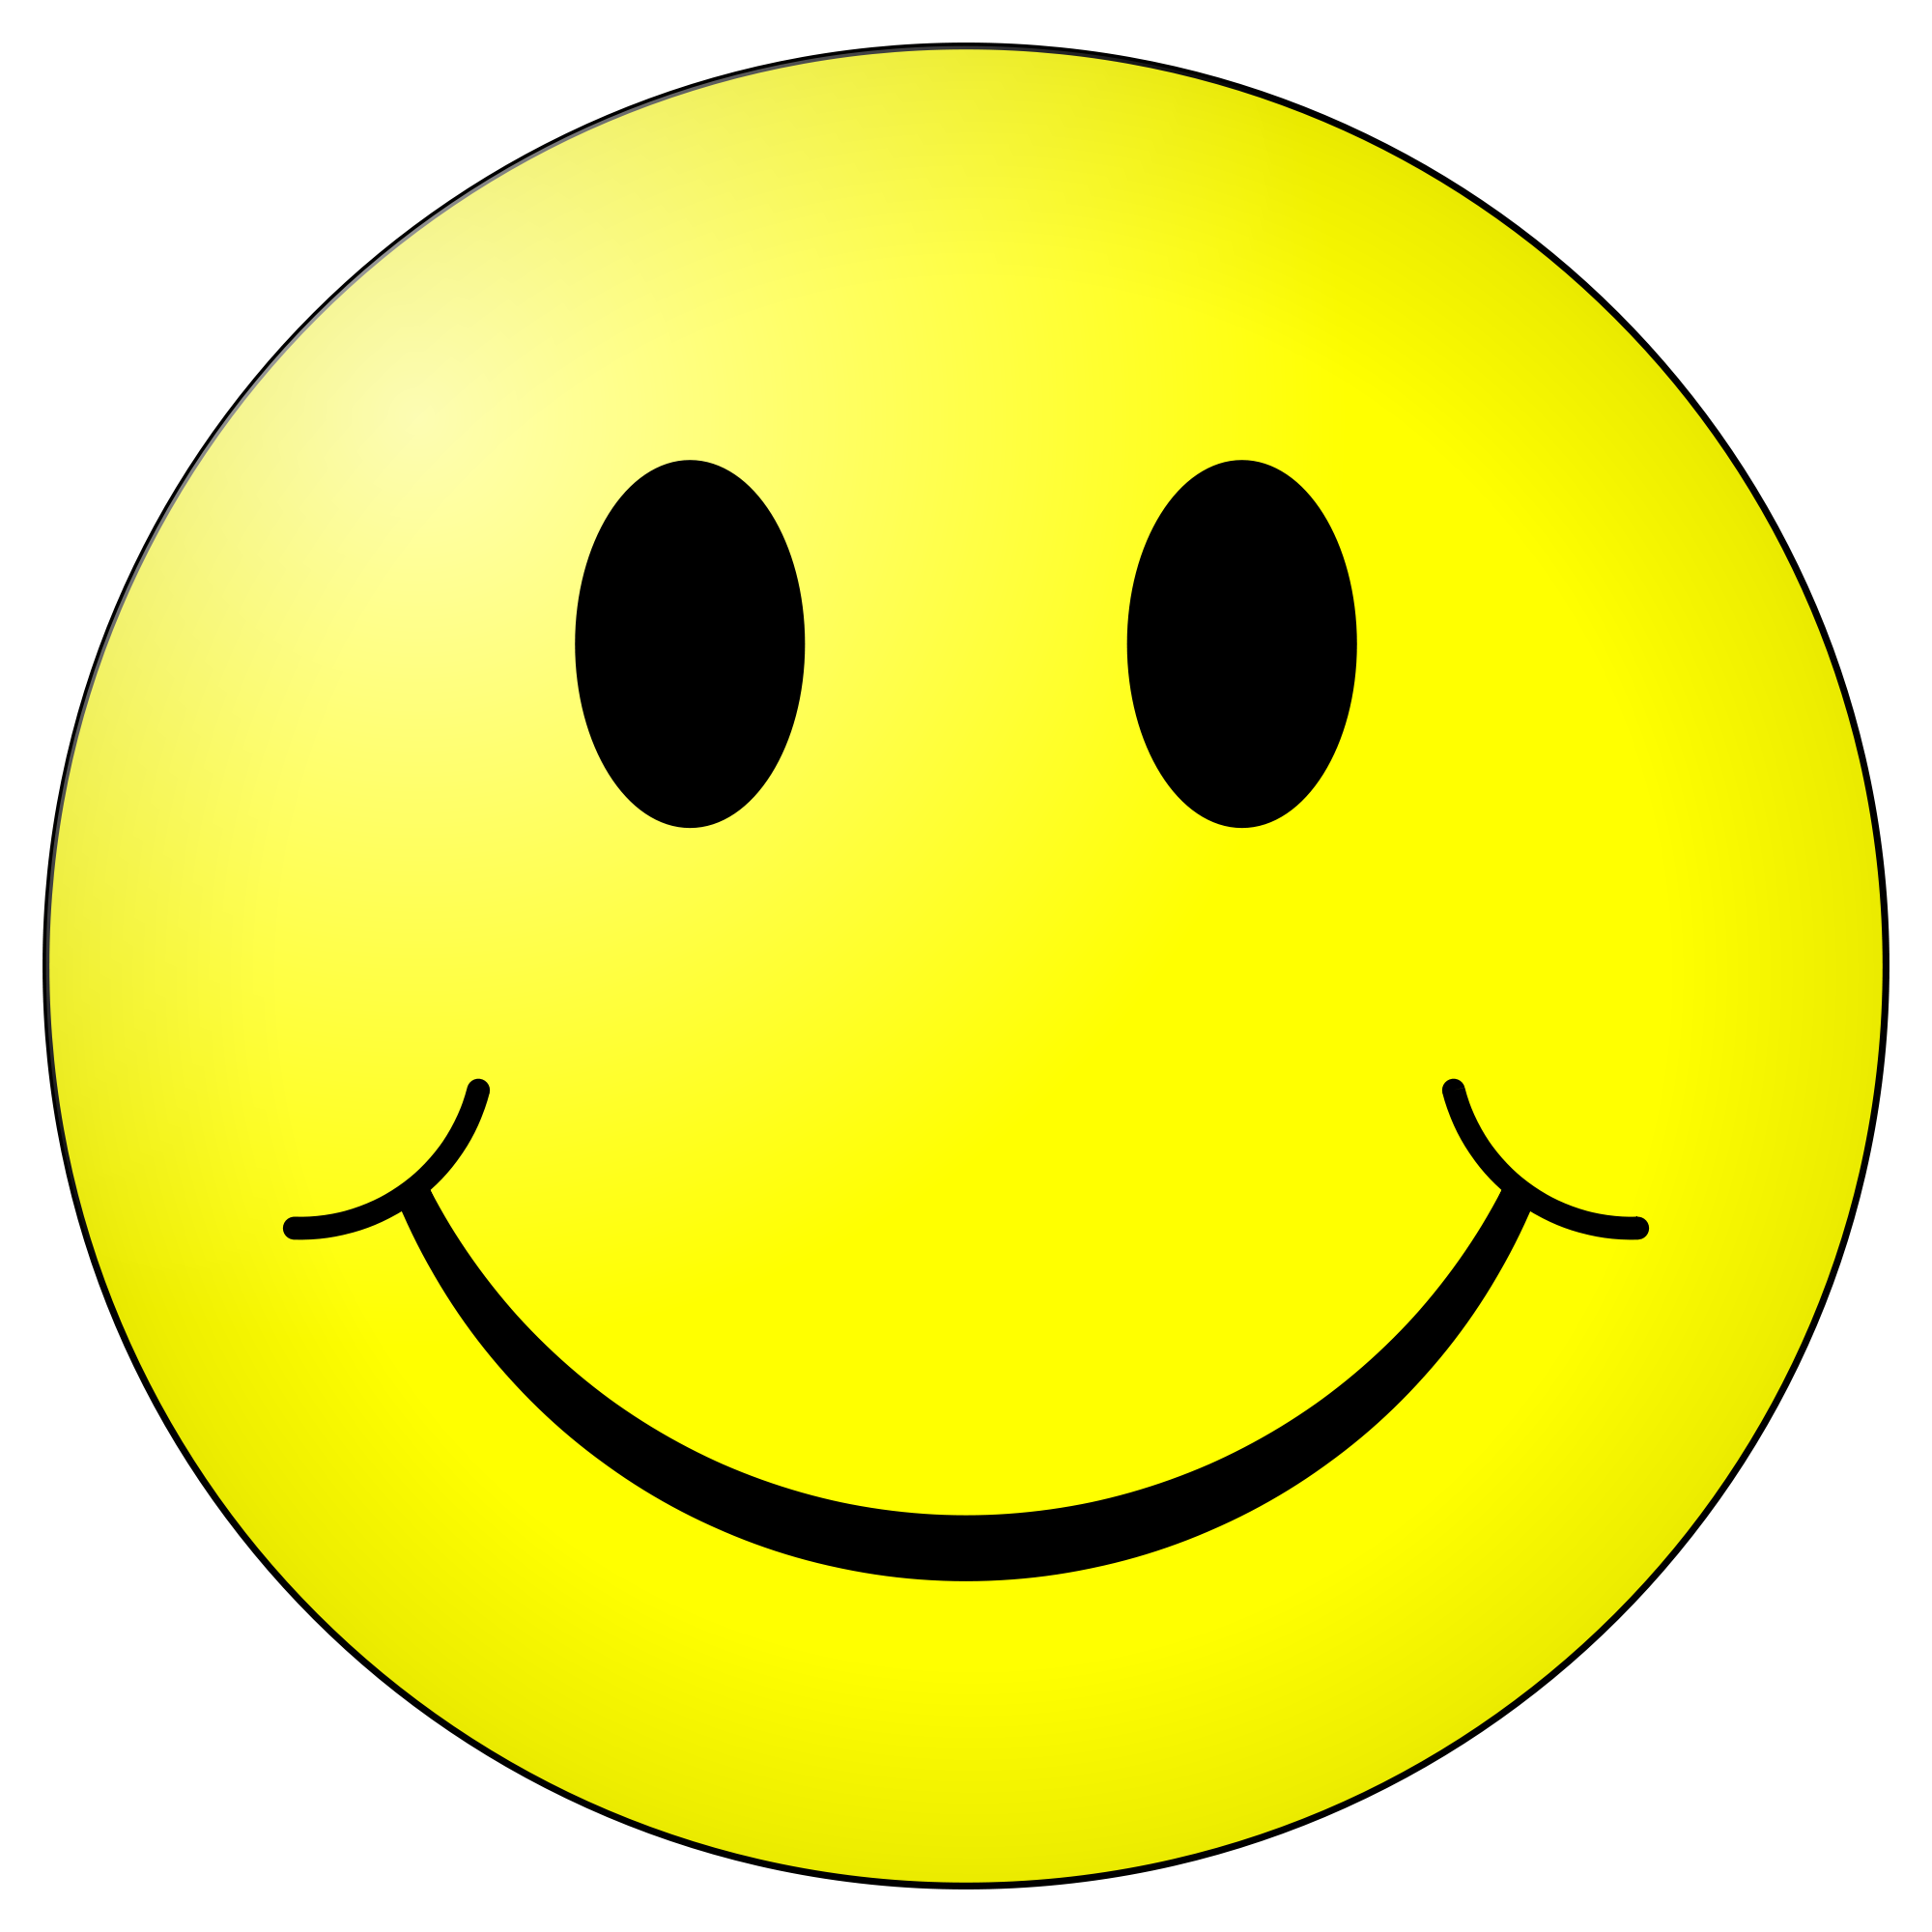 Smiley face clip art emotion.  cartoon pictures in